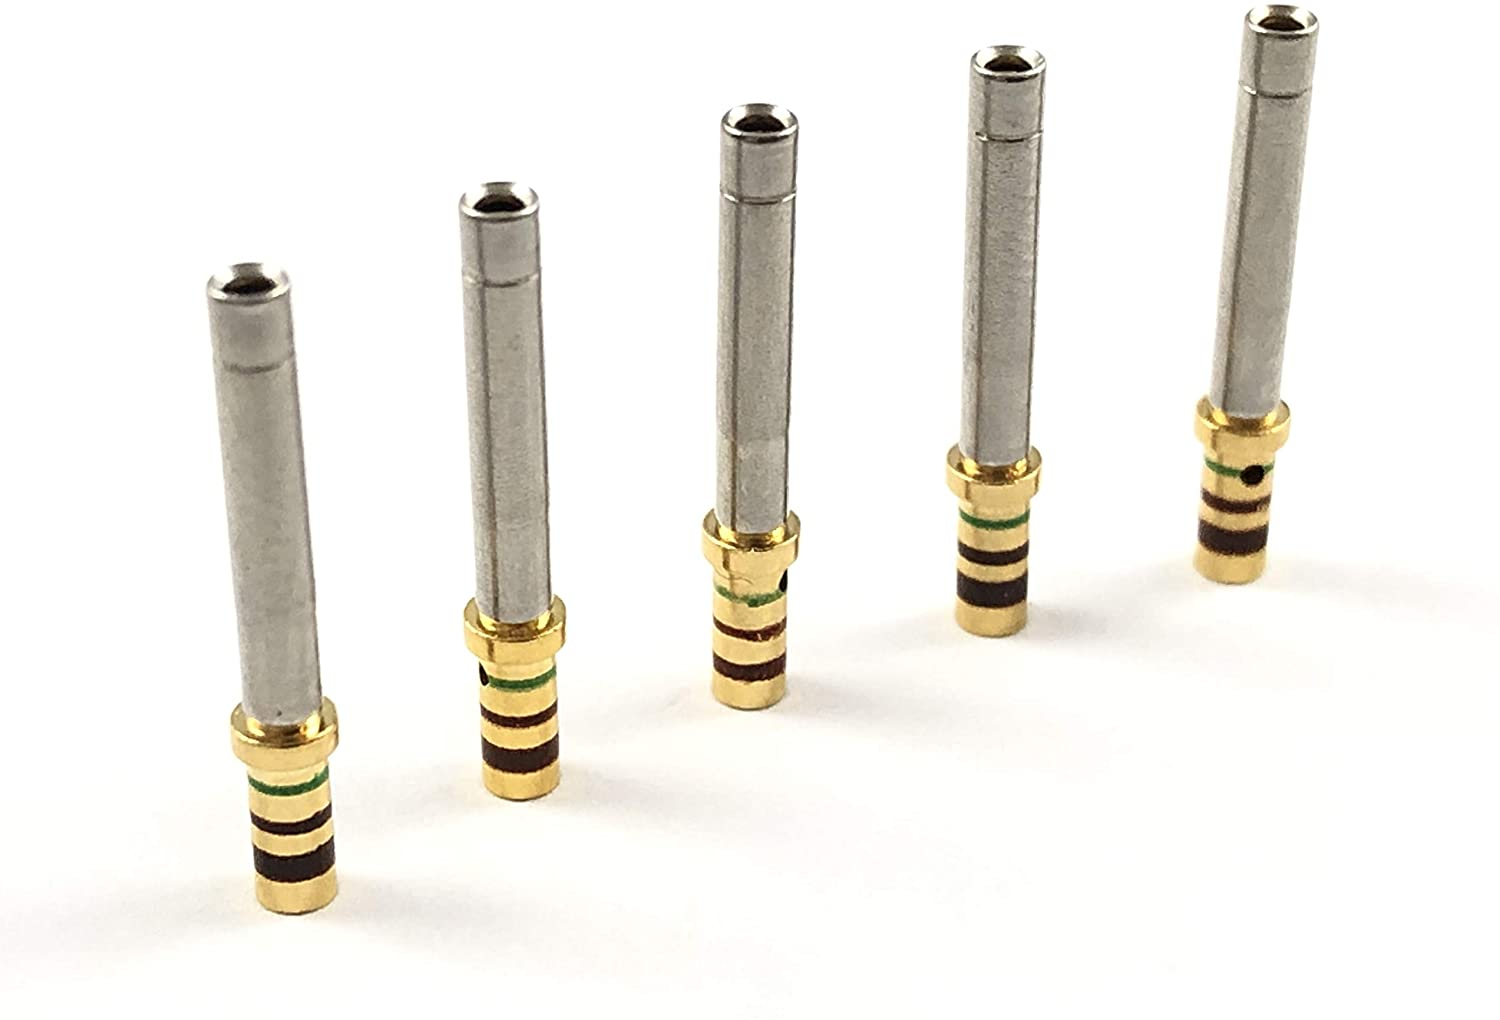 50x Deutsch/TE M39029/5-115 MIL-Spec 24-20 AWG Gold Solid Socket Female Contact Terminal